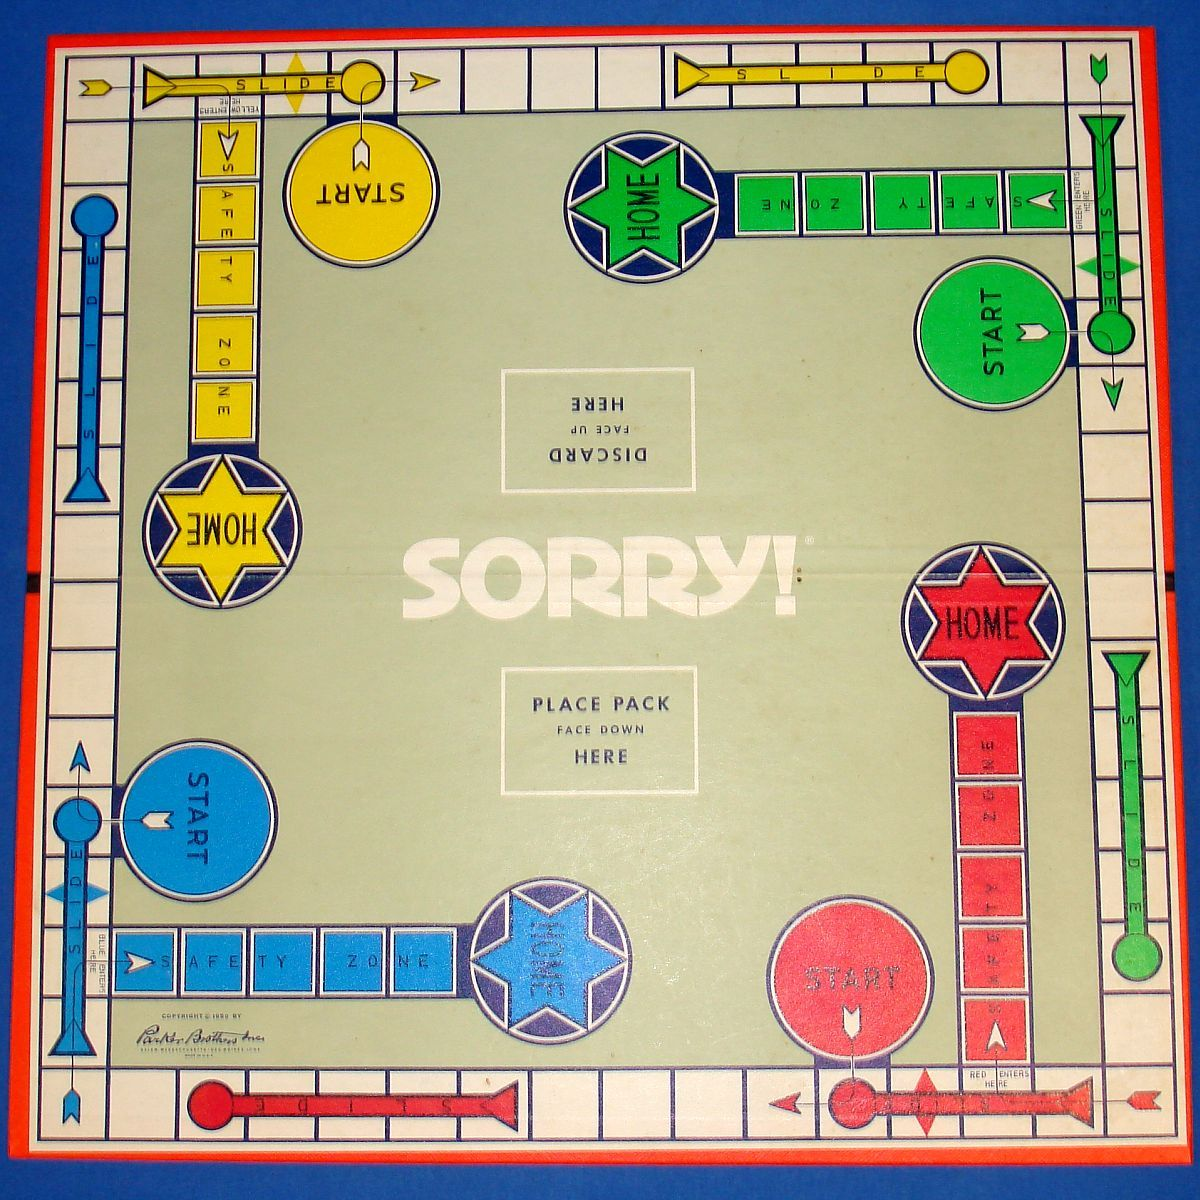 Classic Board Game of Sorry – All About Fun and Games